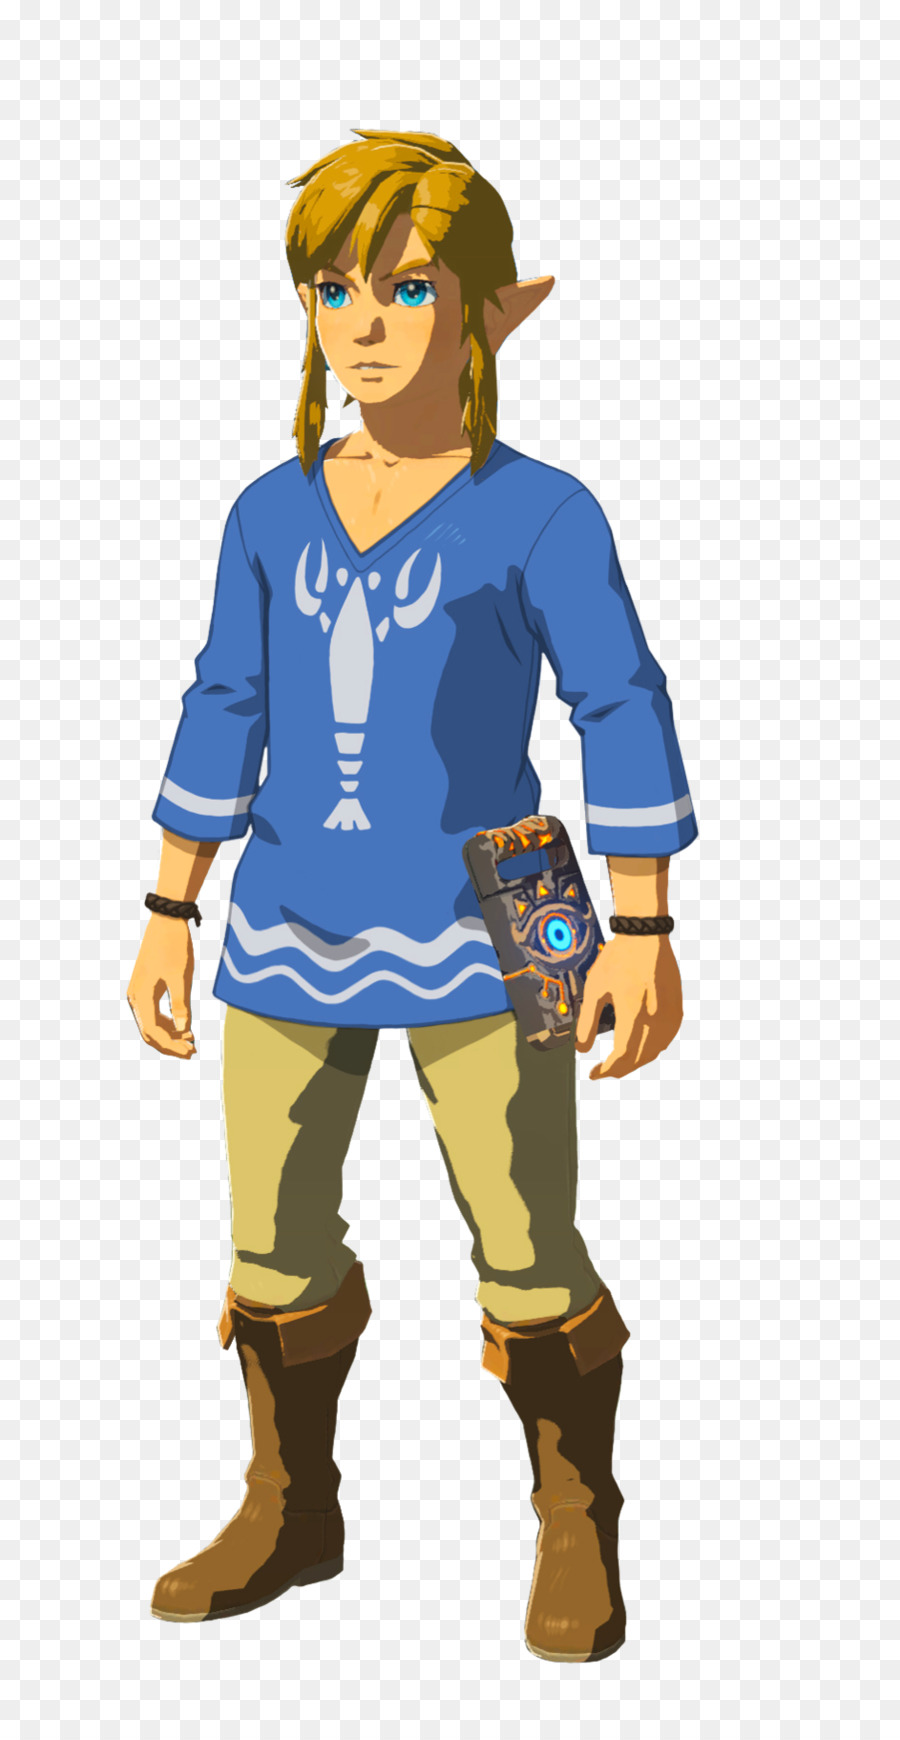 hight resolution of breath of the wild lobster shirt clipart the champions ballad the legend of zelda